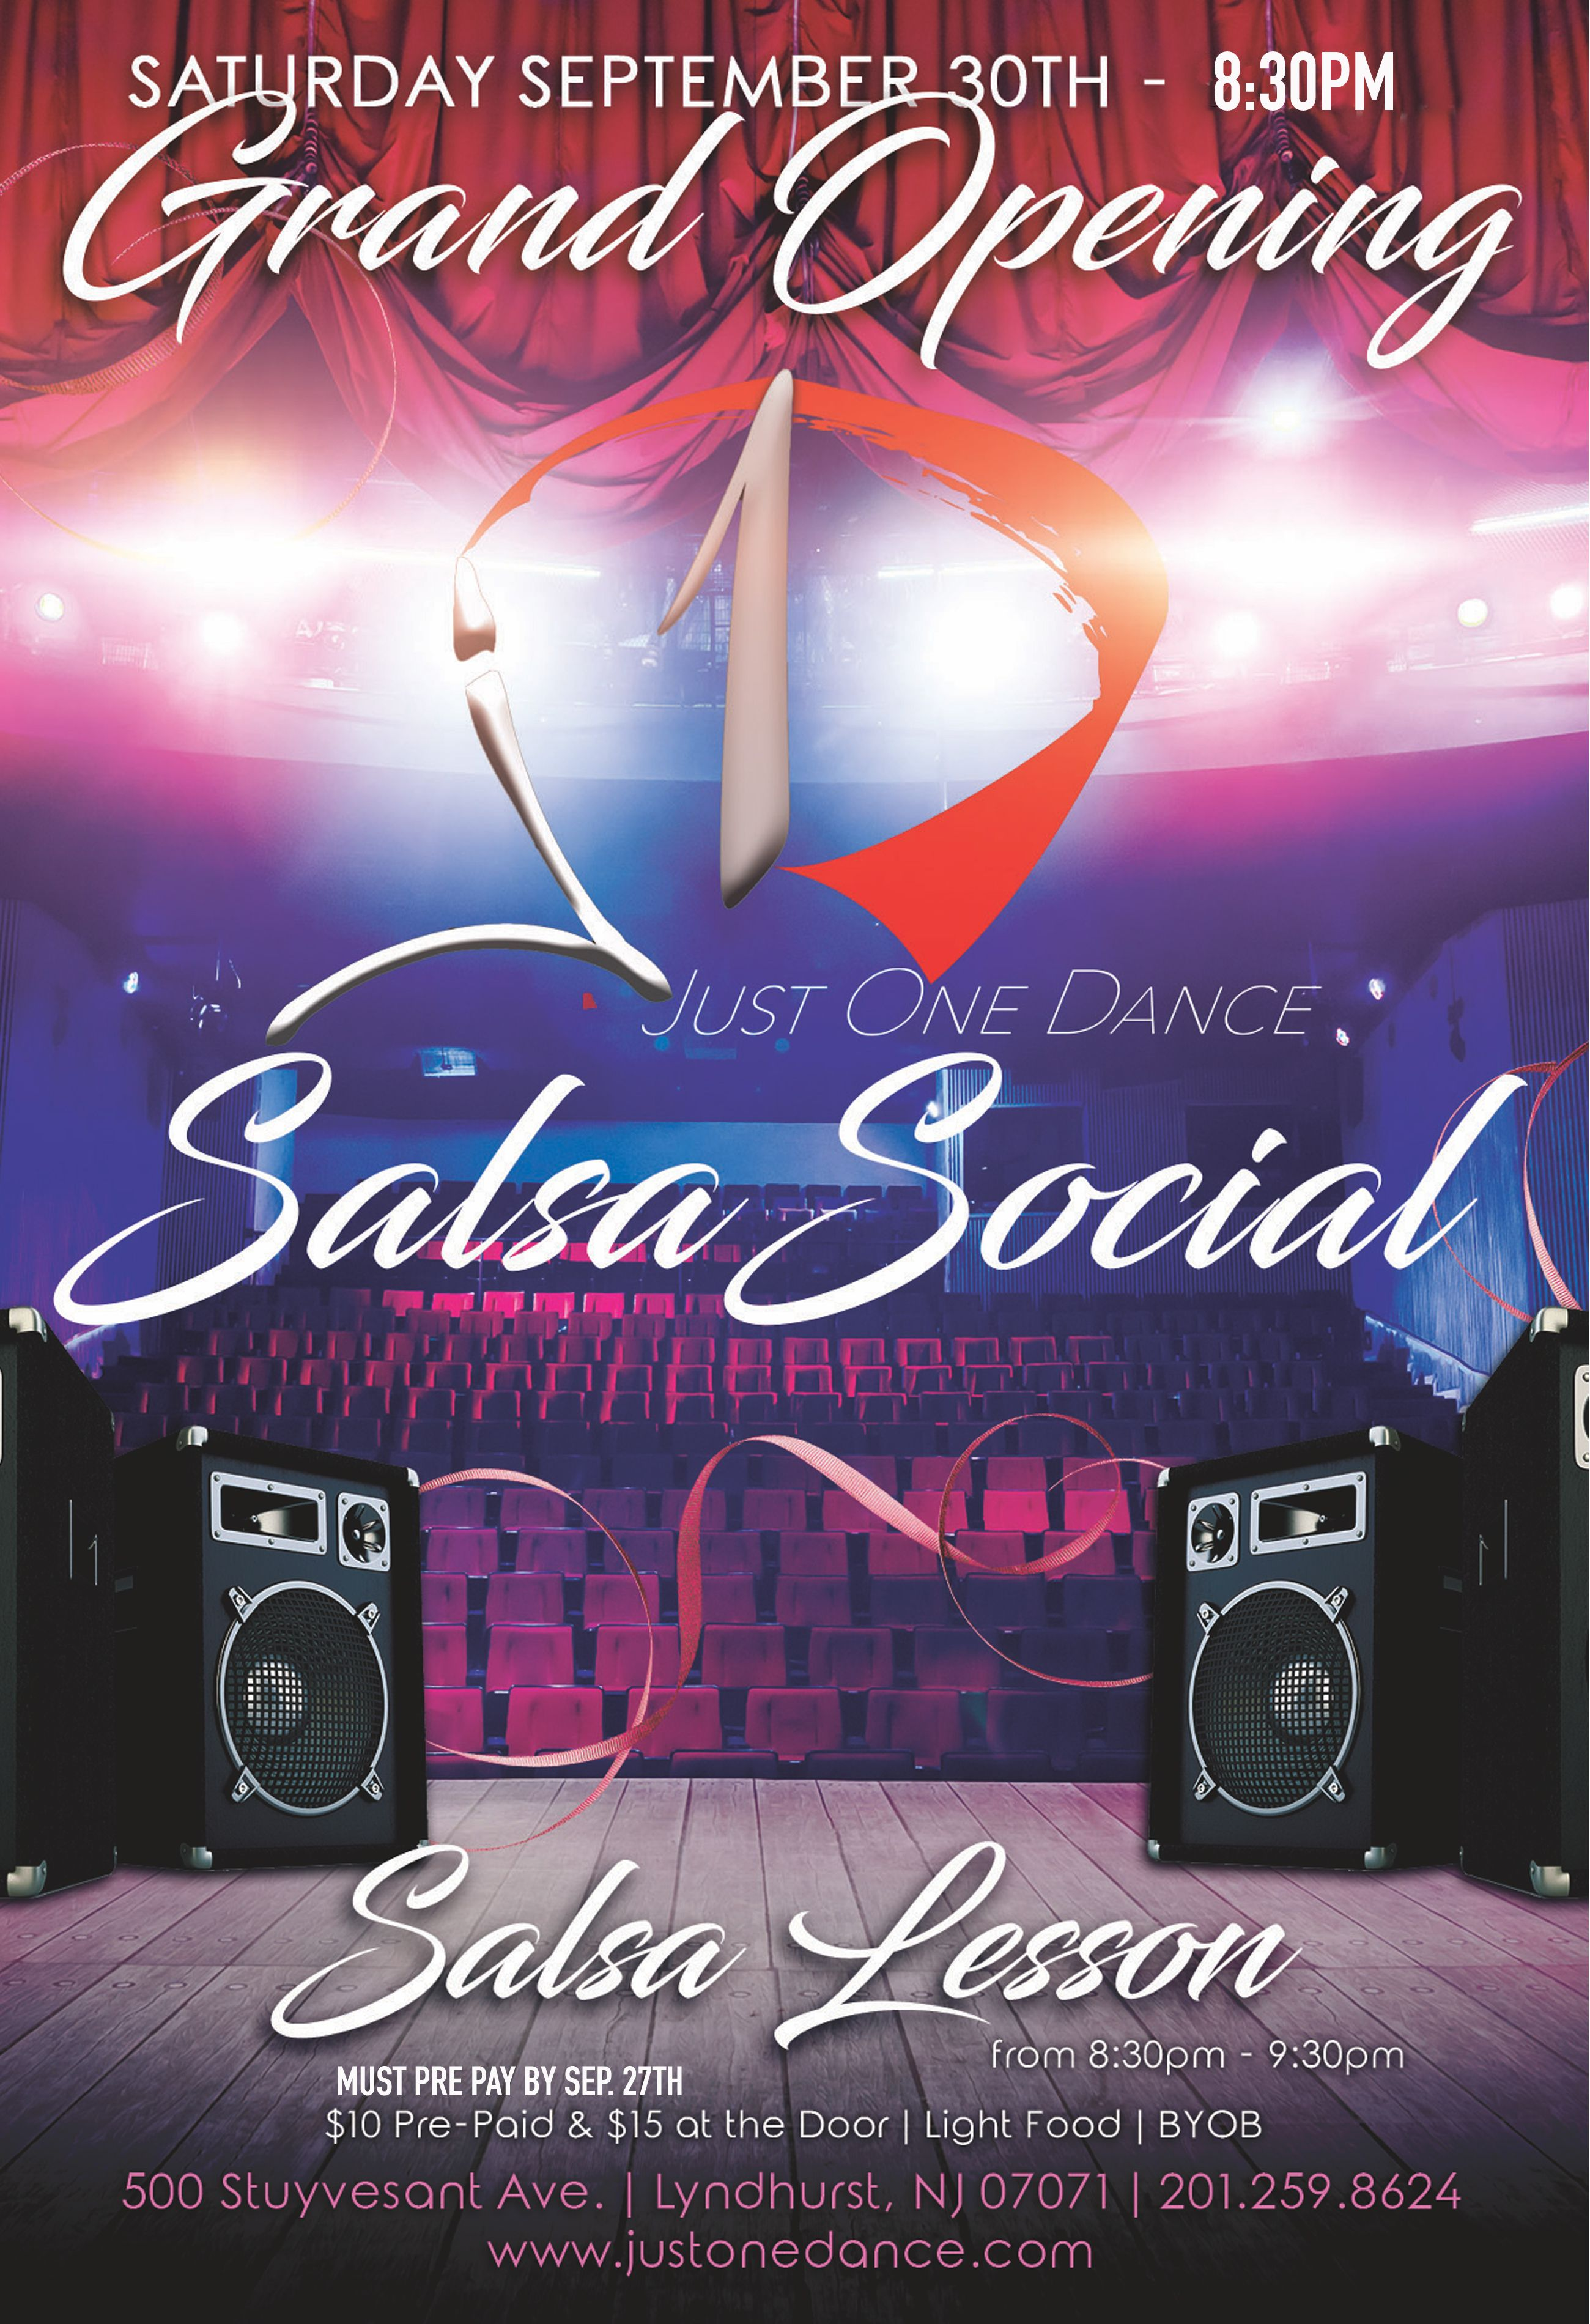 Learn how to salsa! 3 different levels